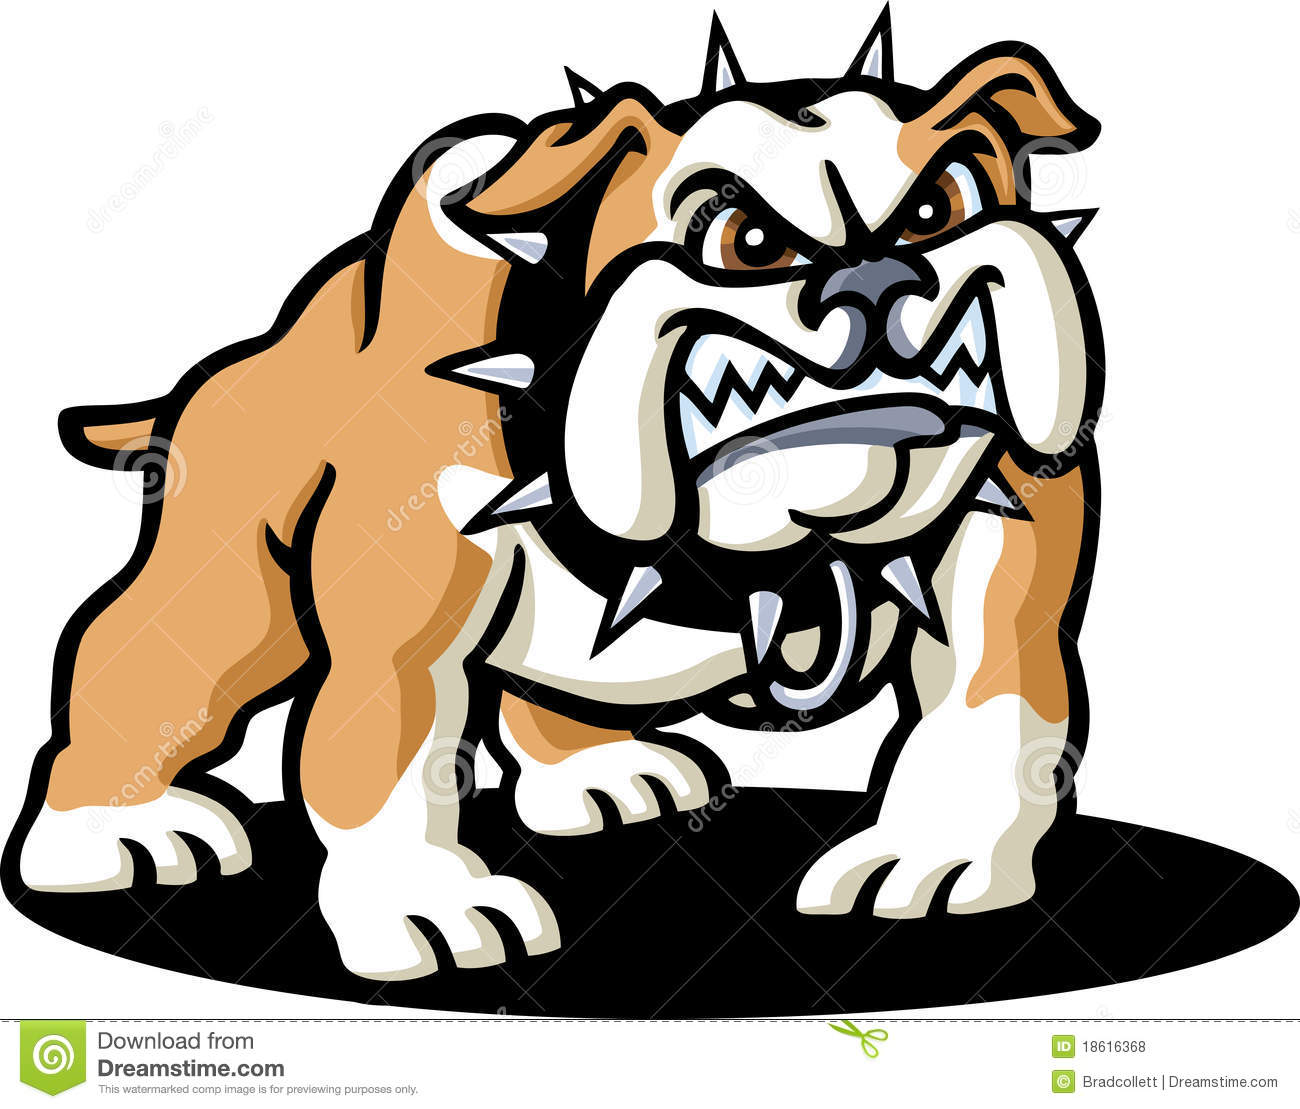 Bulldog Royalty Free Stock Photos - Image: 18616368